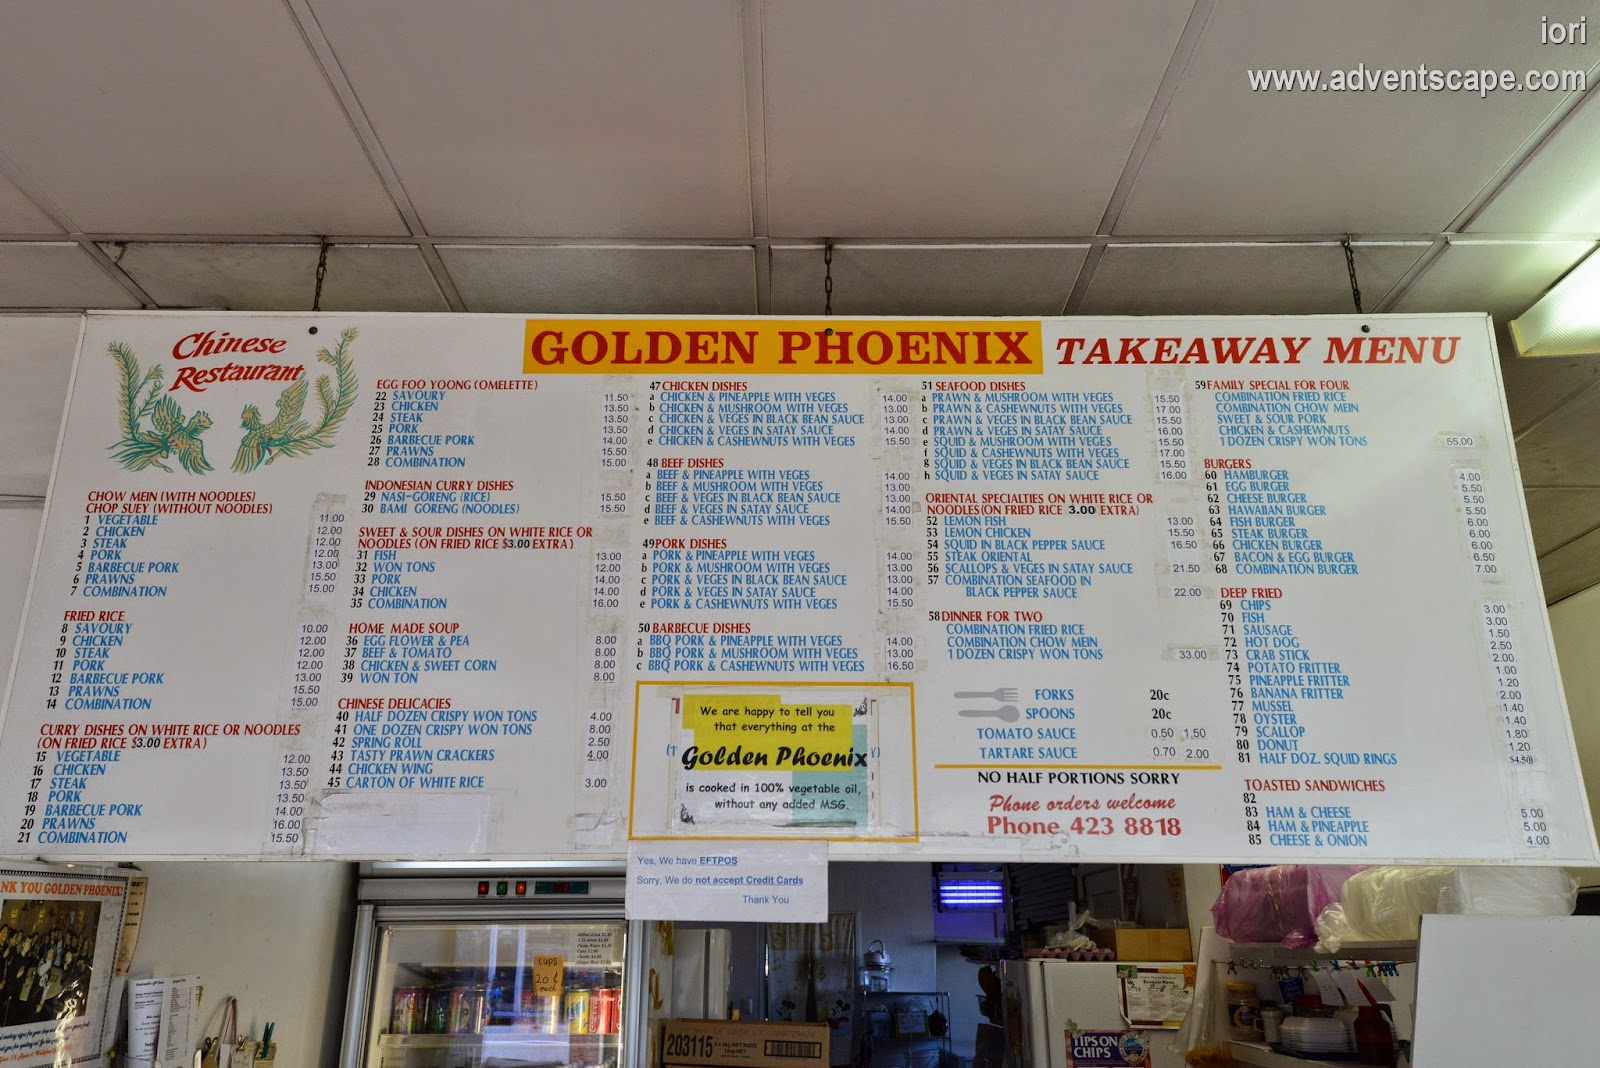 Philip Avellana, iori, adventscape, Australian Landscape Photographer, travel, restaurant, North Island, Wellsford, NZ, New Zealand, Golden Phoenix, food, takeaway, menu